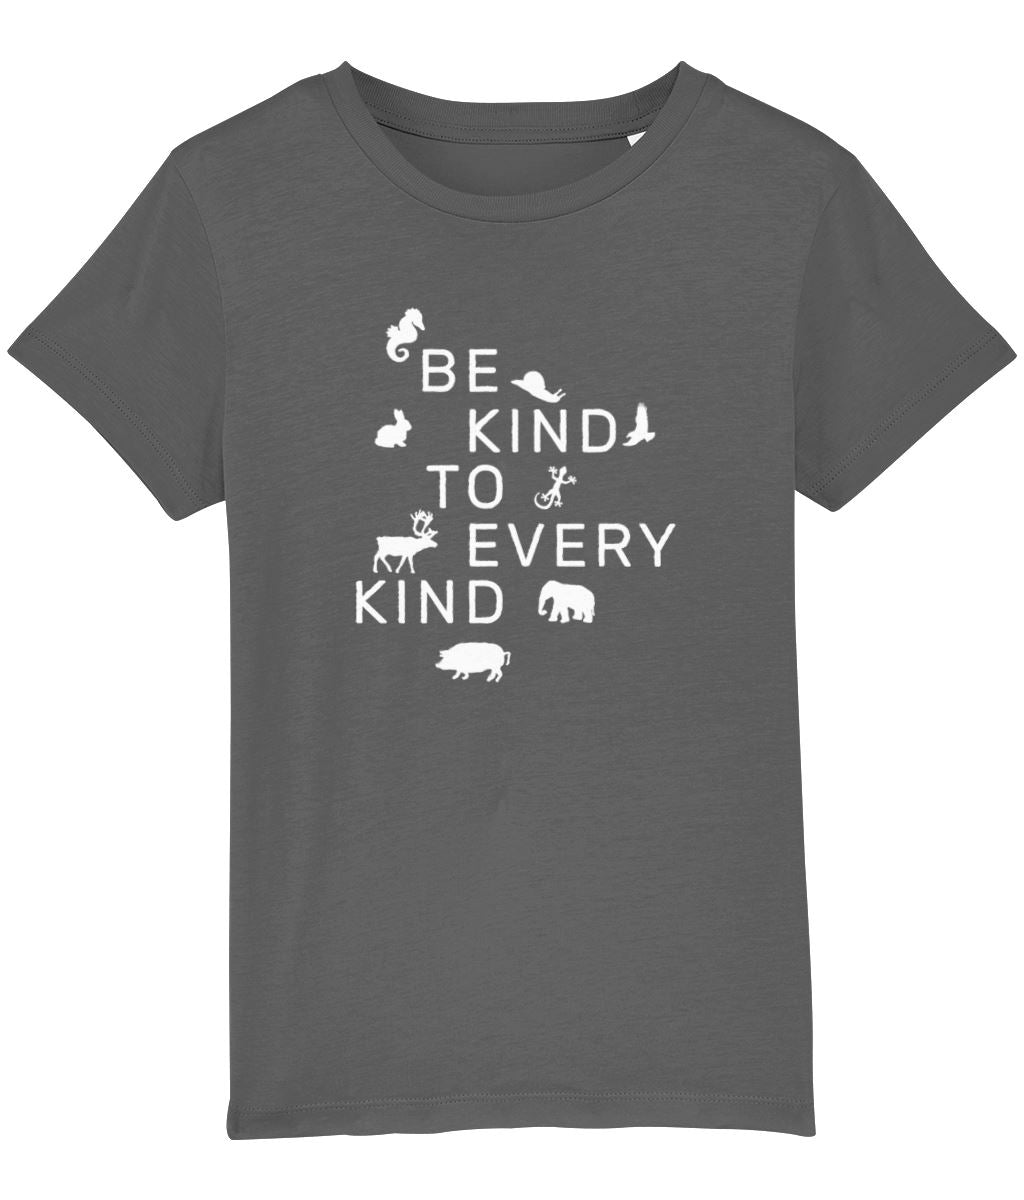 """Be Kind To Every Kind"" Children's Vegan T-Shirt (Unisex) Clothing Vegan Original Anthracite 3-4 years"